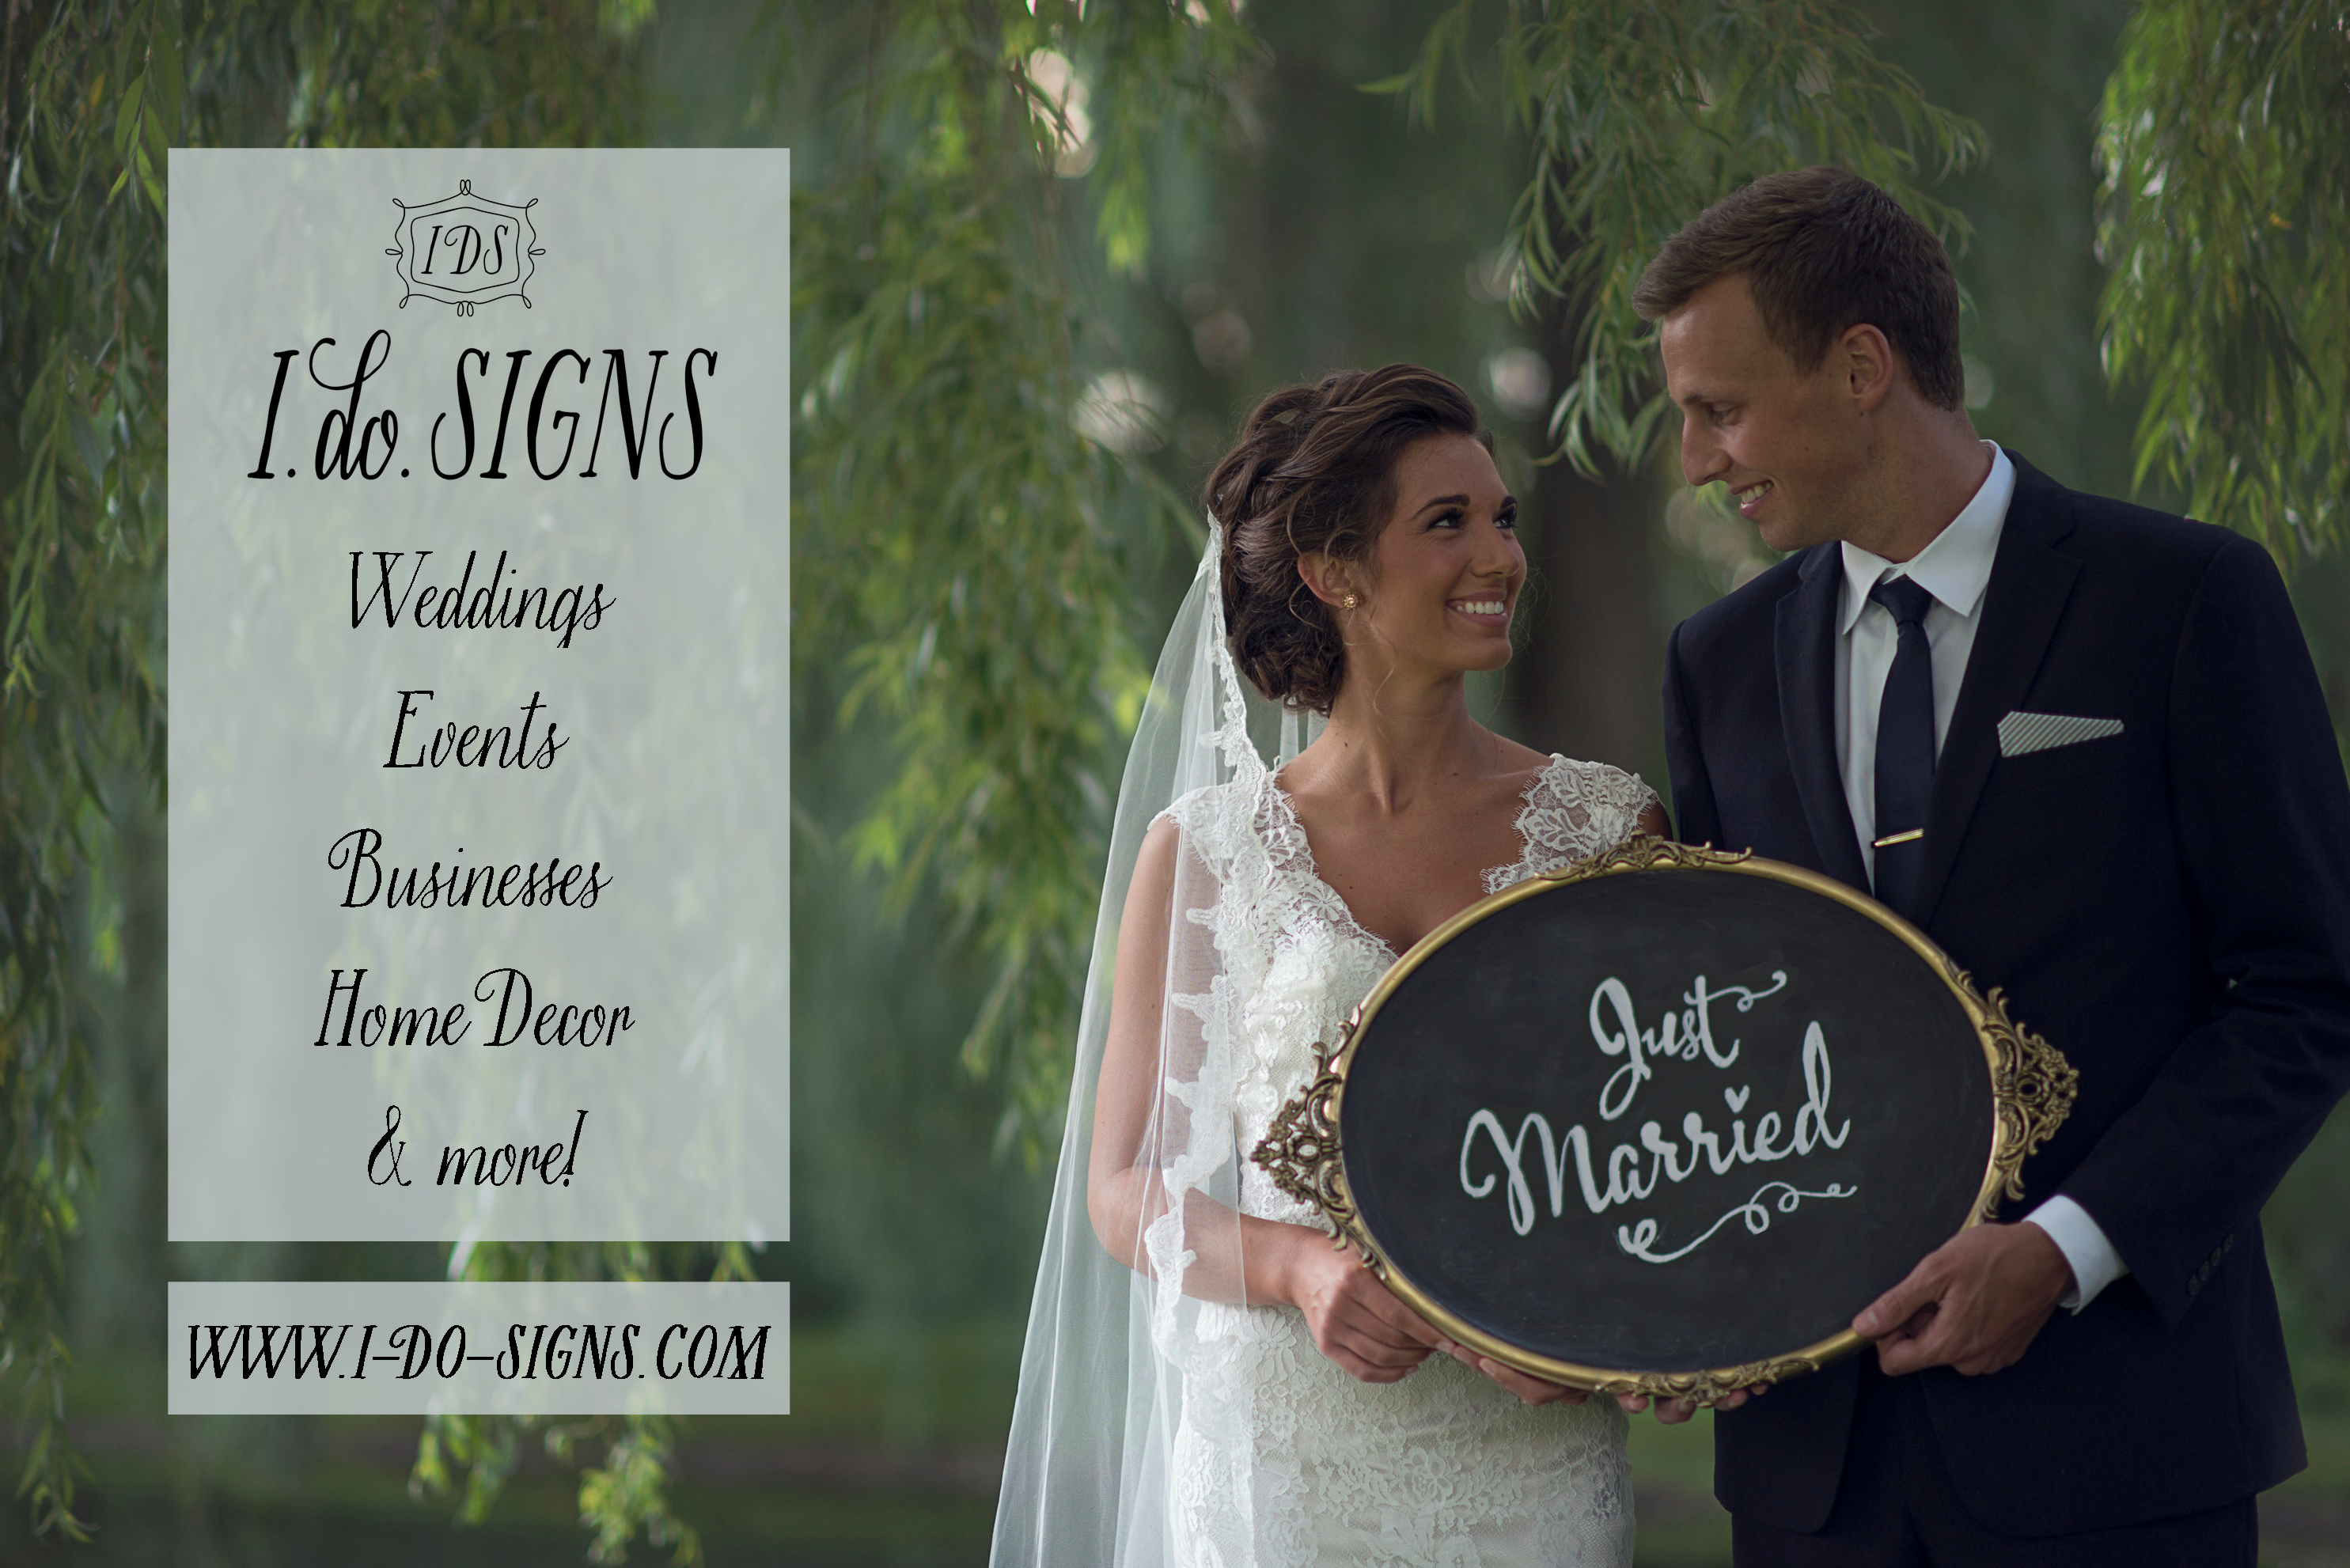 I DO SIGNS: Specializing in custom Wedding & signs and more.  Visit: www.i-do-signs.com